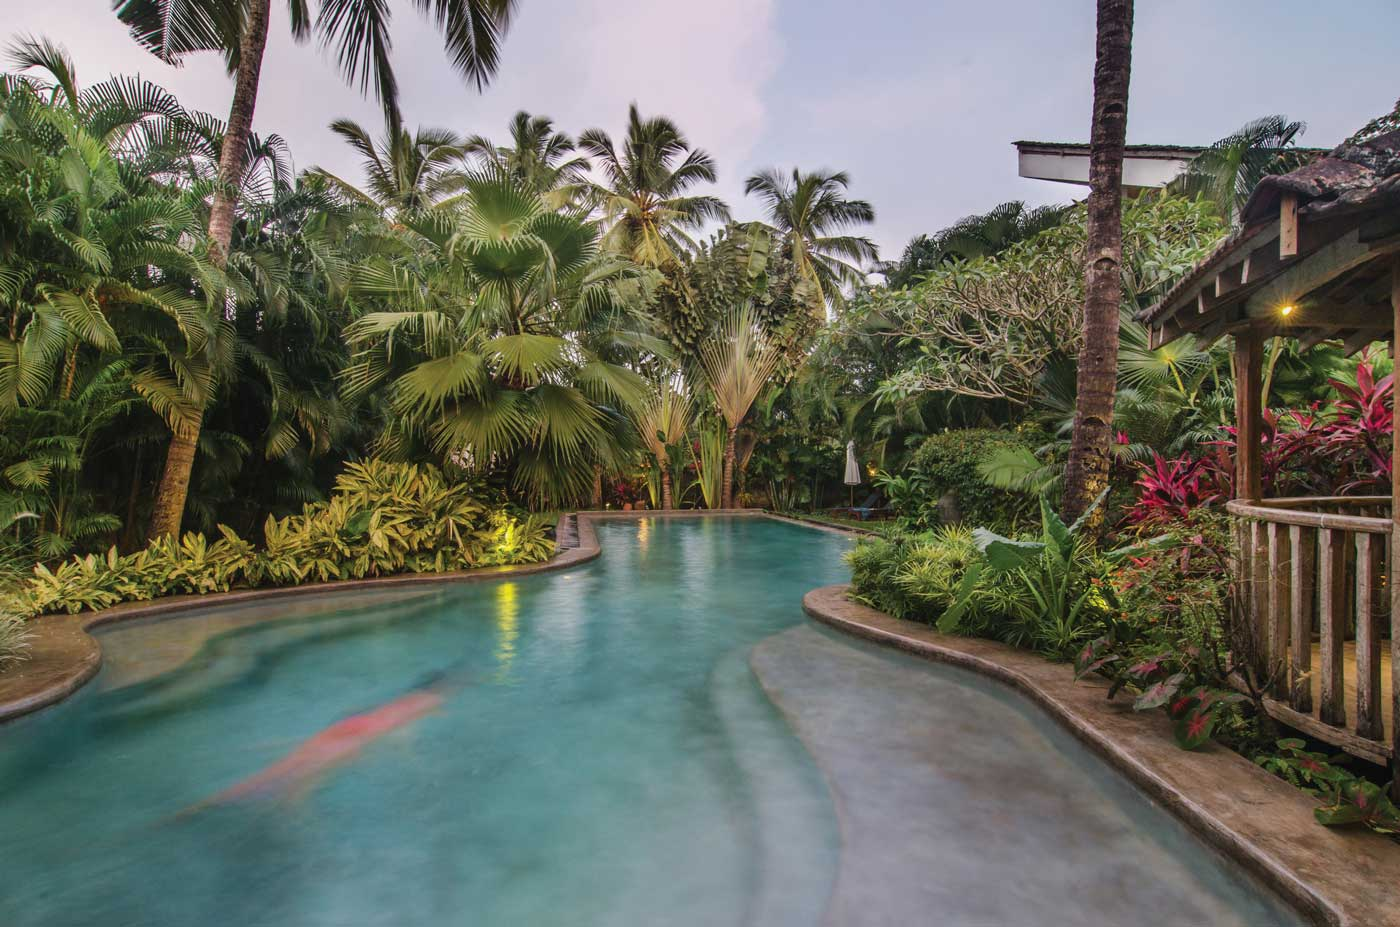 Free form swimming pool amid the luxury villas and jungle gardens of Coco Shambhala in Goa